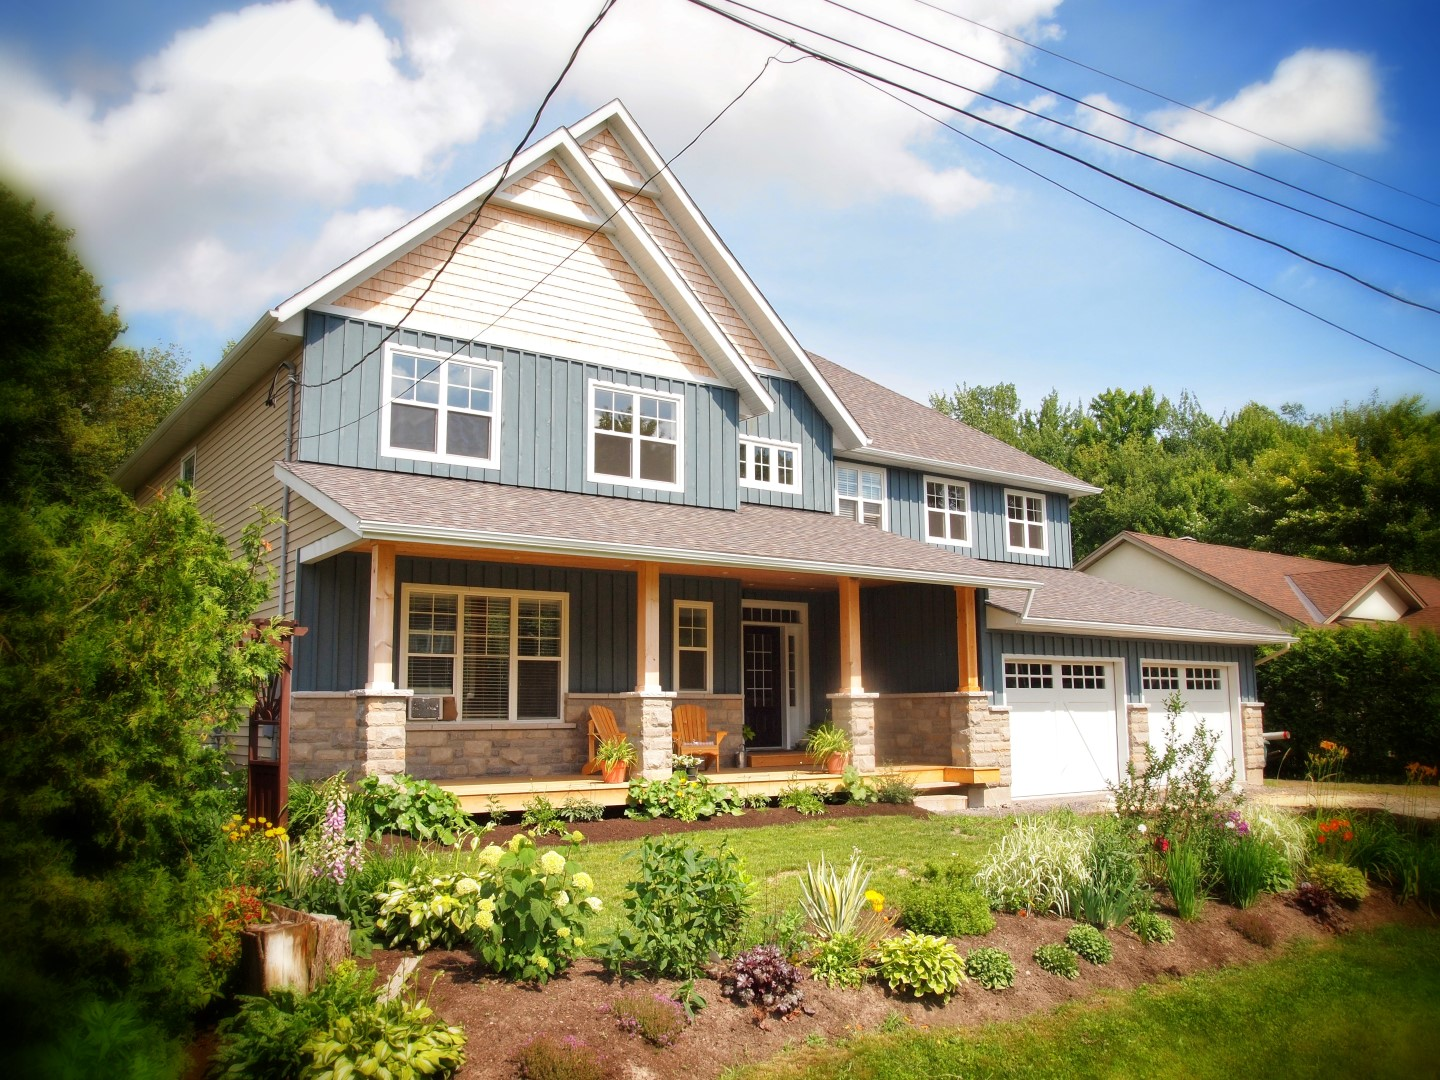 Single Home - Orleans